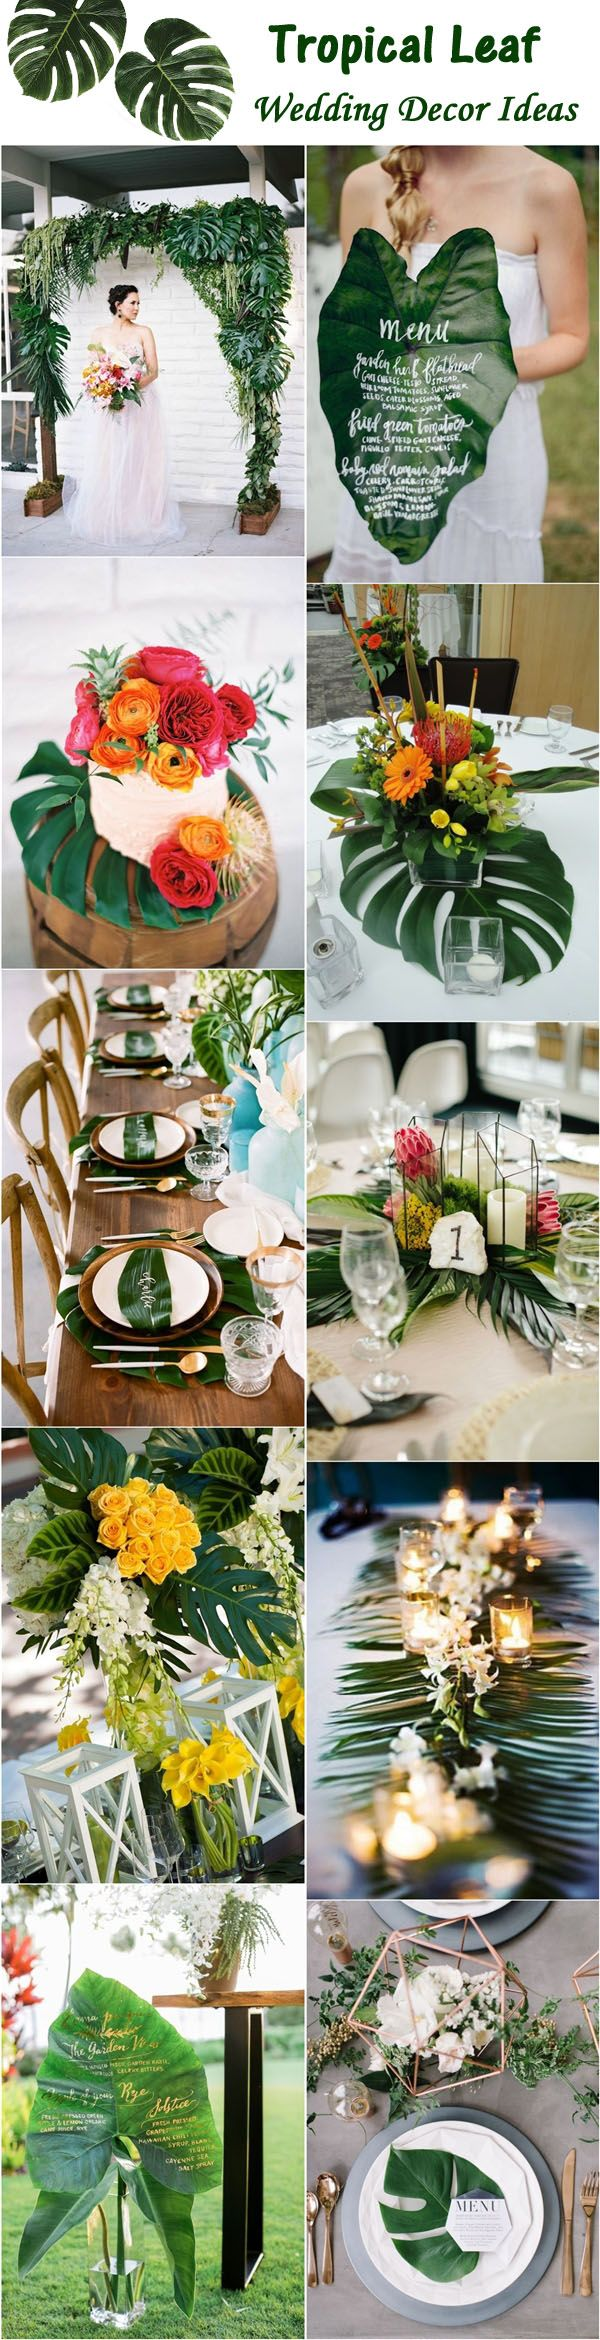 2018 trend tropical leaf greenery wedding decor ideas green 2018 trend tropical leaf greenery wedding decor ideas junglespirit Image collections